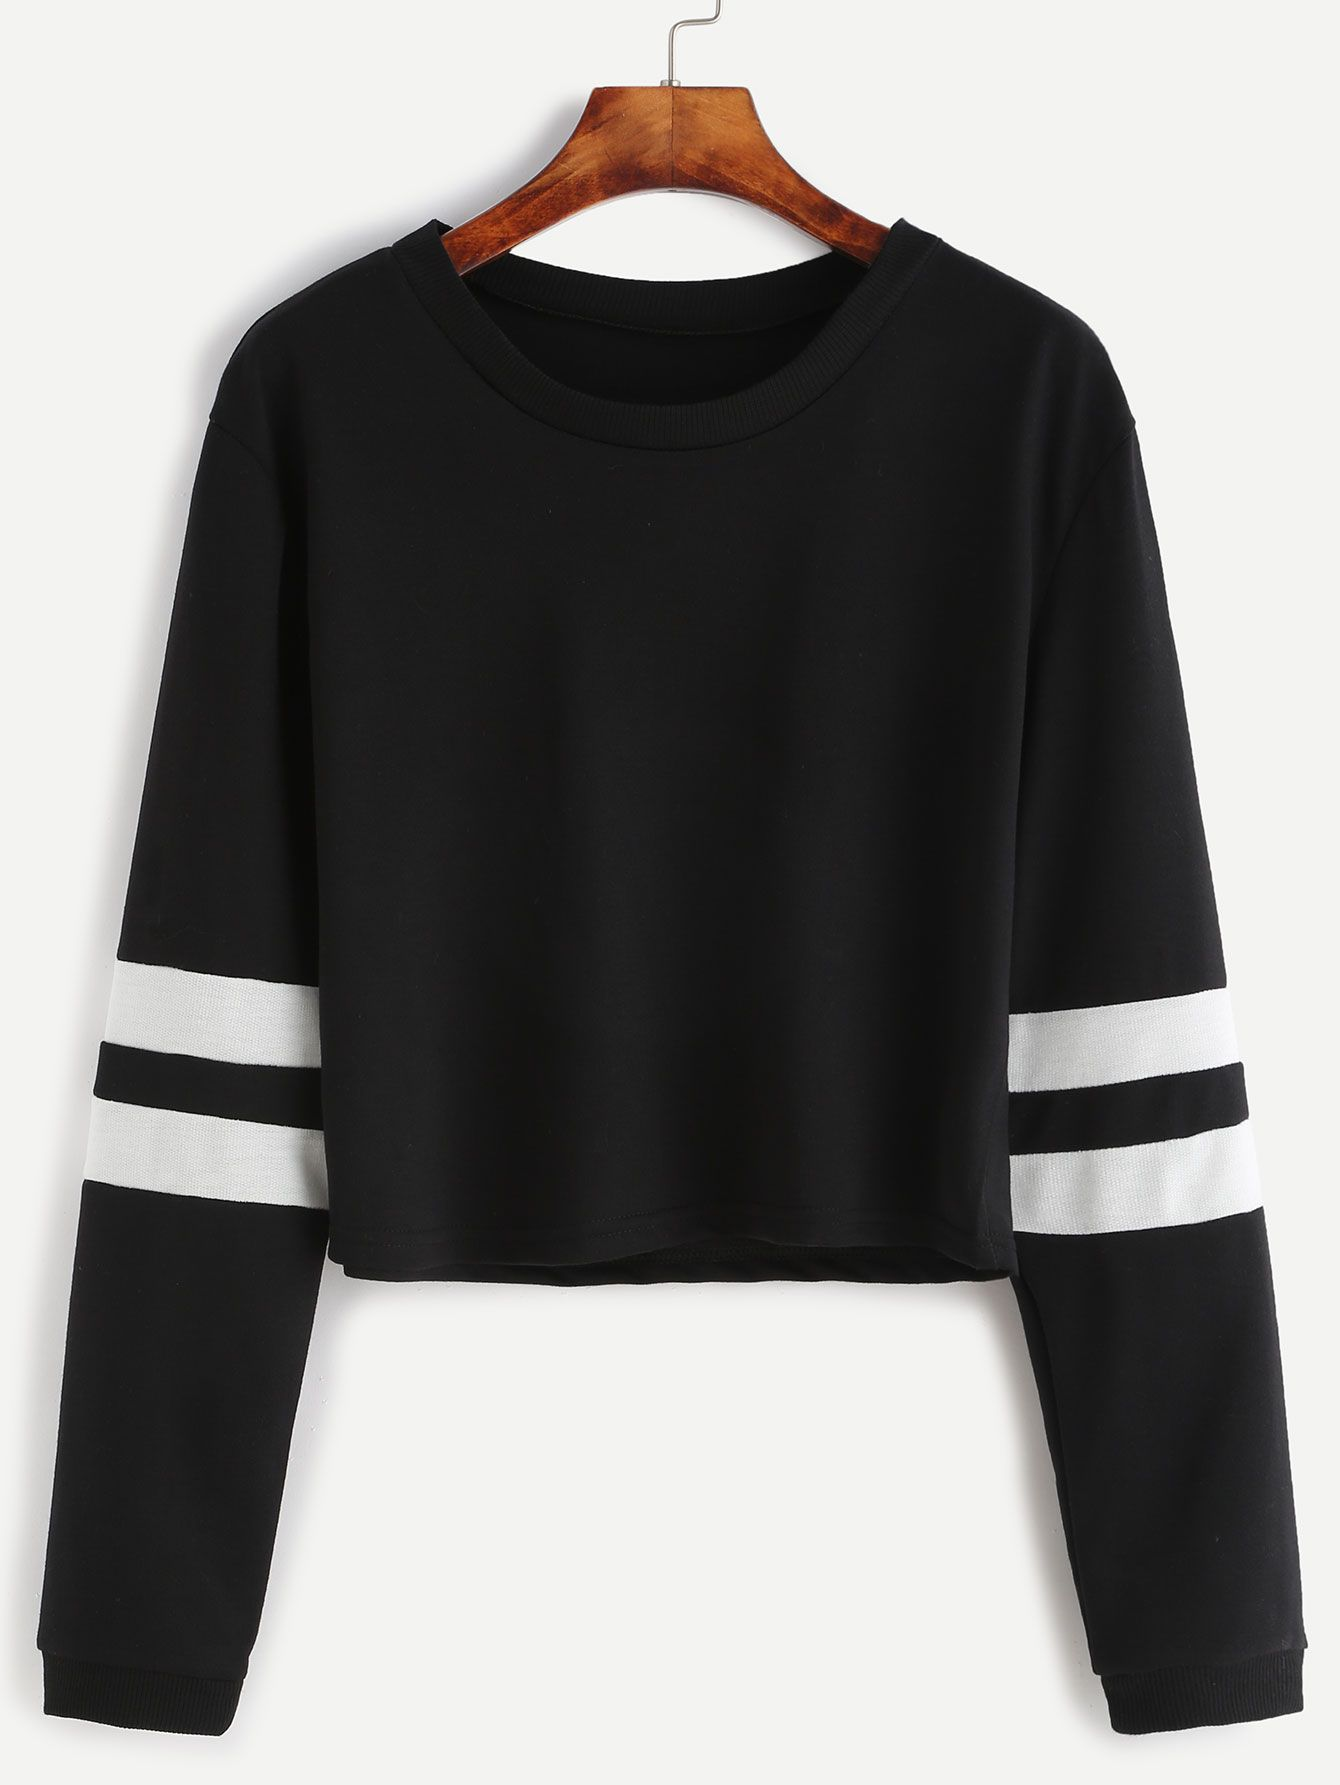 9b60866dcc Shop Black Varsity Striped Sleeve Crop T-shirt online. SheIn offers Black  Varsity Striped Sleeve Crop T-shirt & more to fit your fashionable needs.